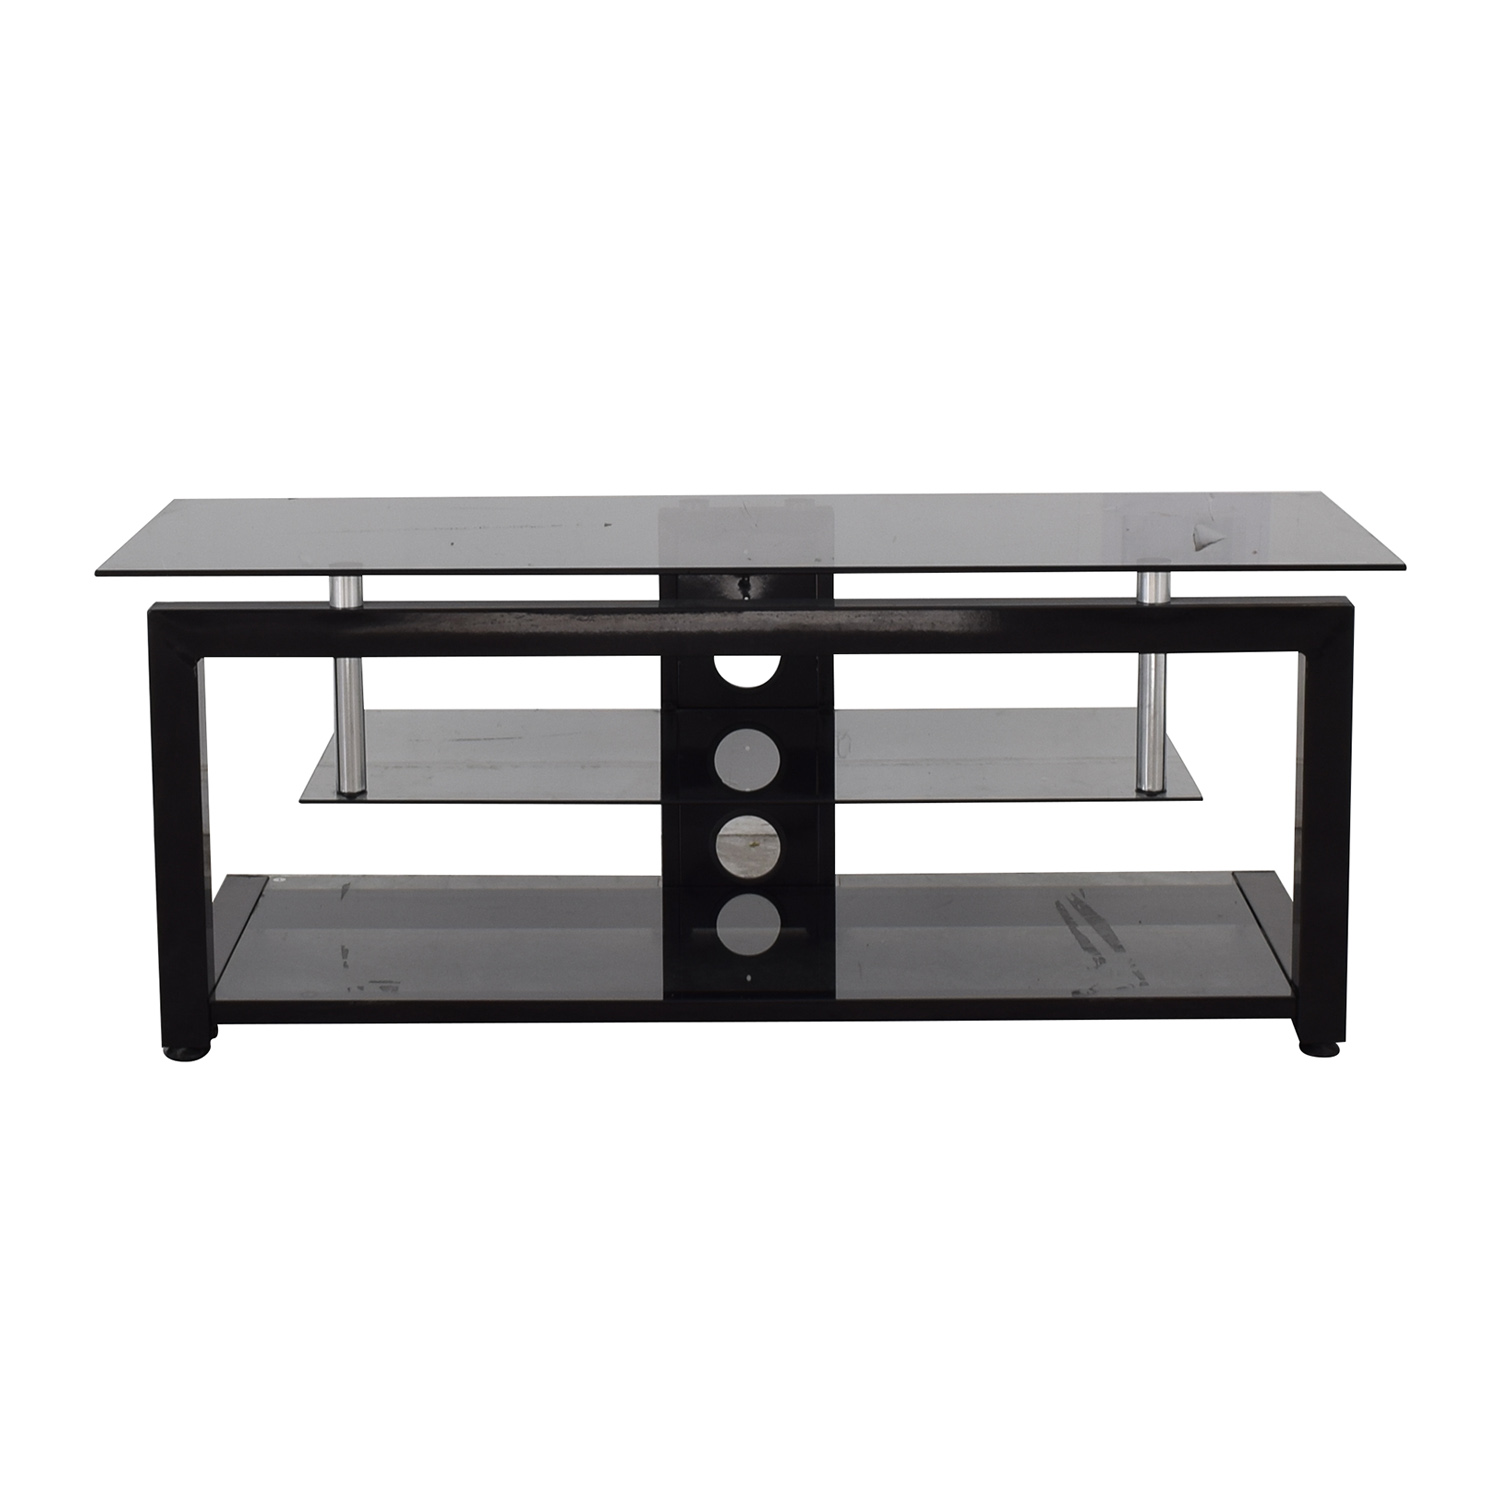 BBY Solutions BBY Solutions Glass and Black TV Stand dimensions